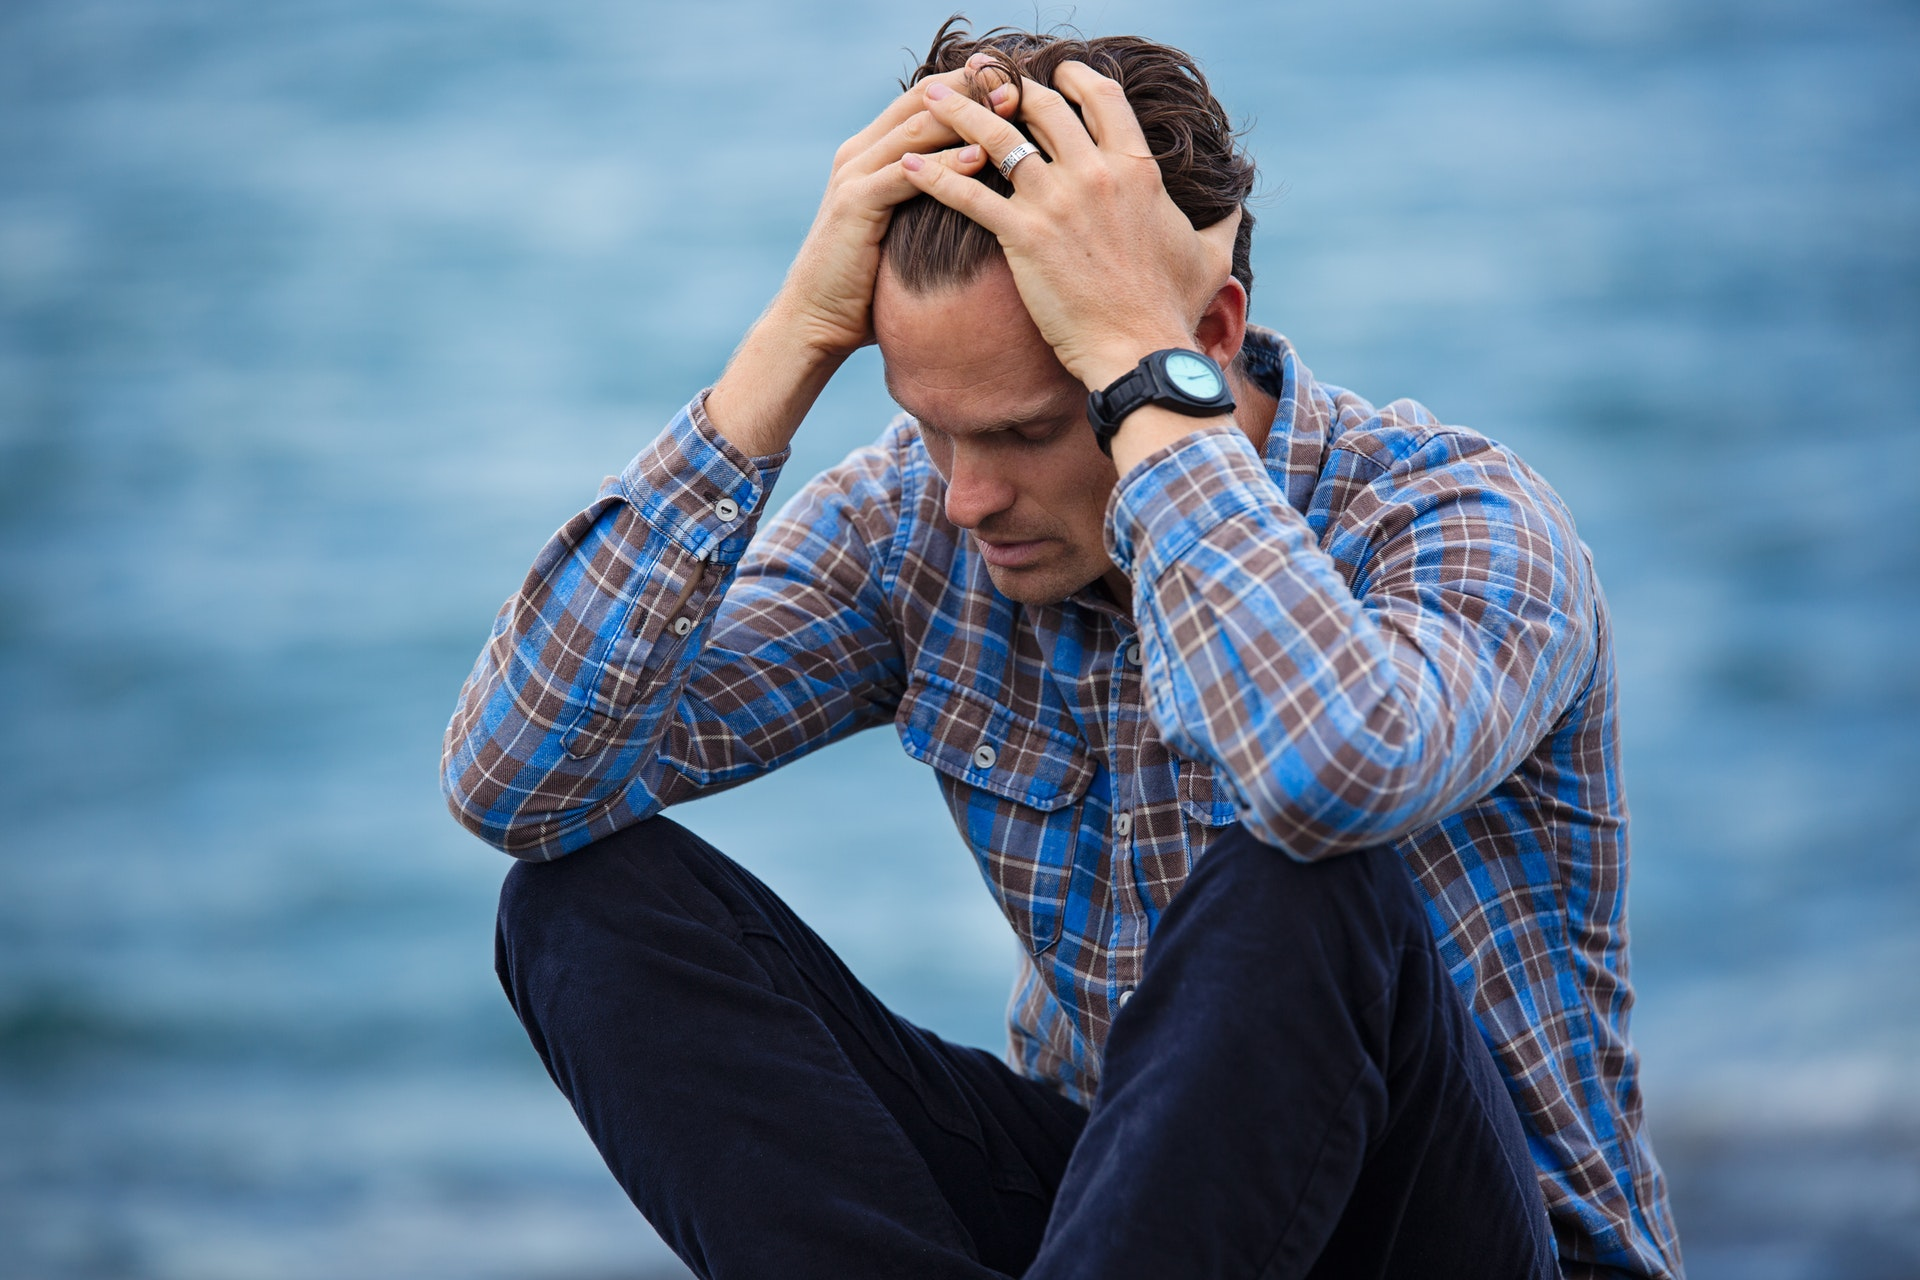 Man in Blue Environment Looking Distressed